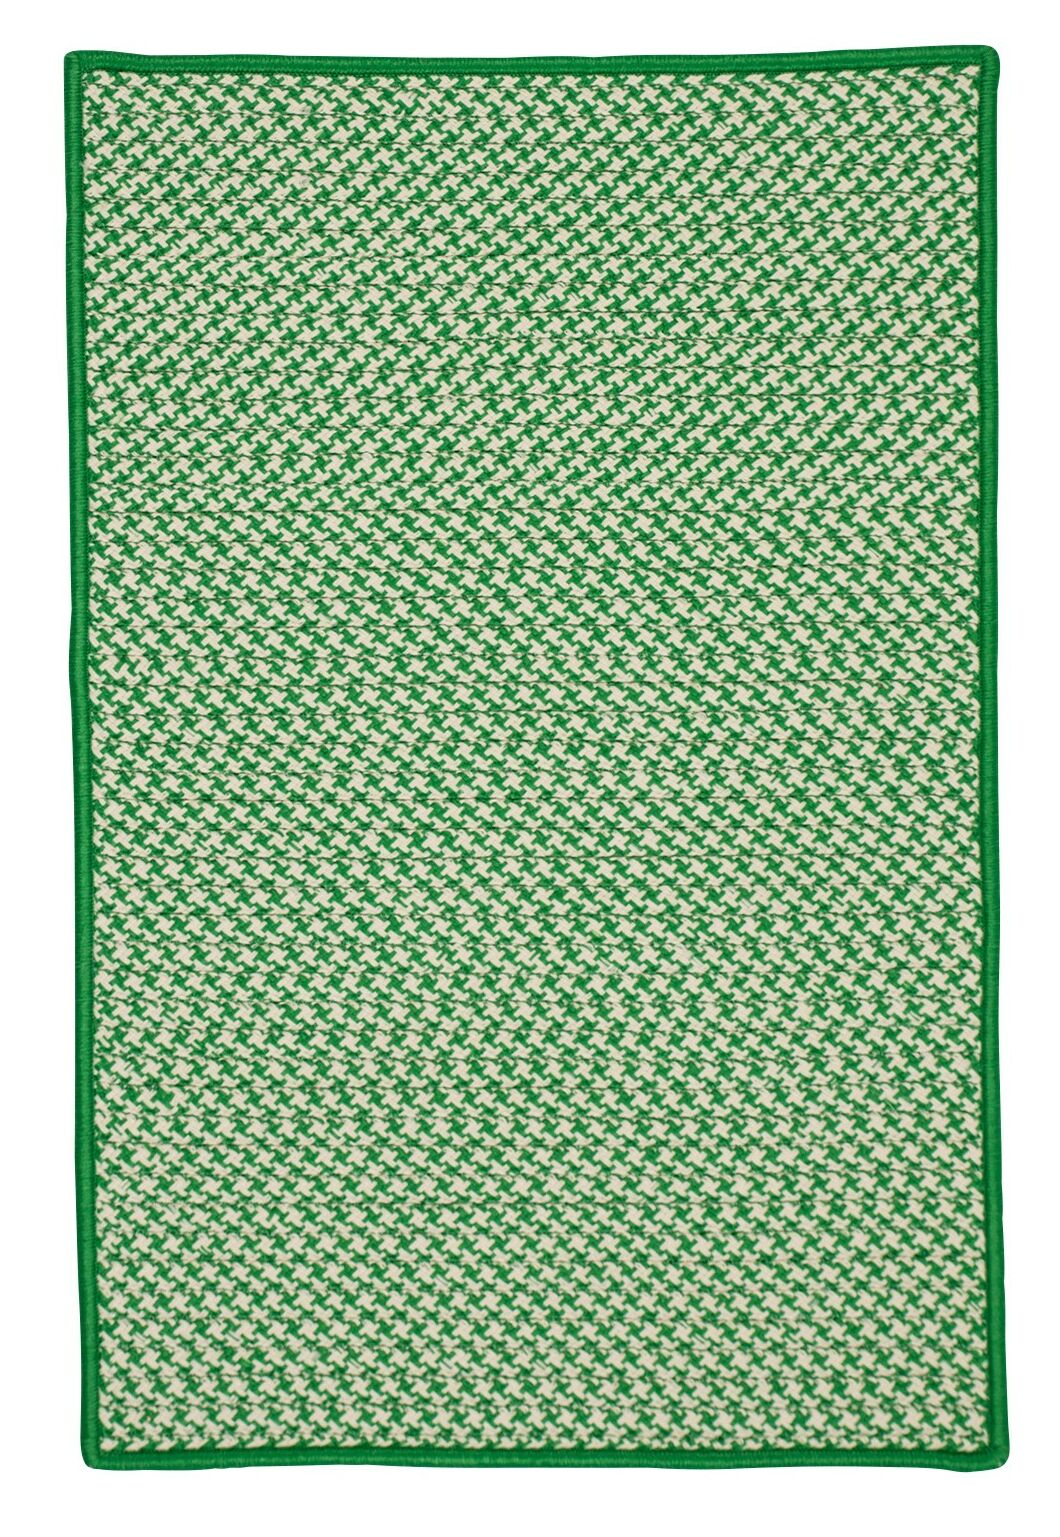 Surrency Houndstooth Tweed Hand-Woven Green Indoor/Outdoor Area Rug Rug Size: Rectangle 7' x 9'